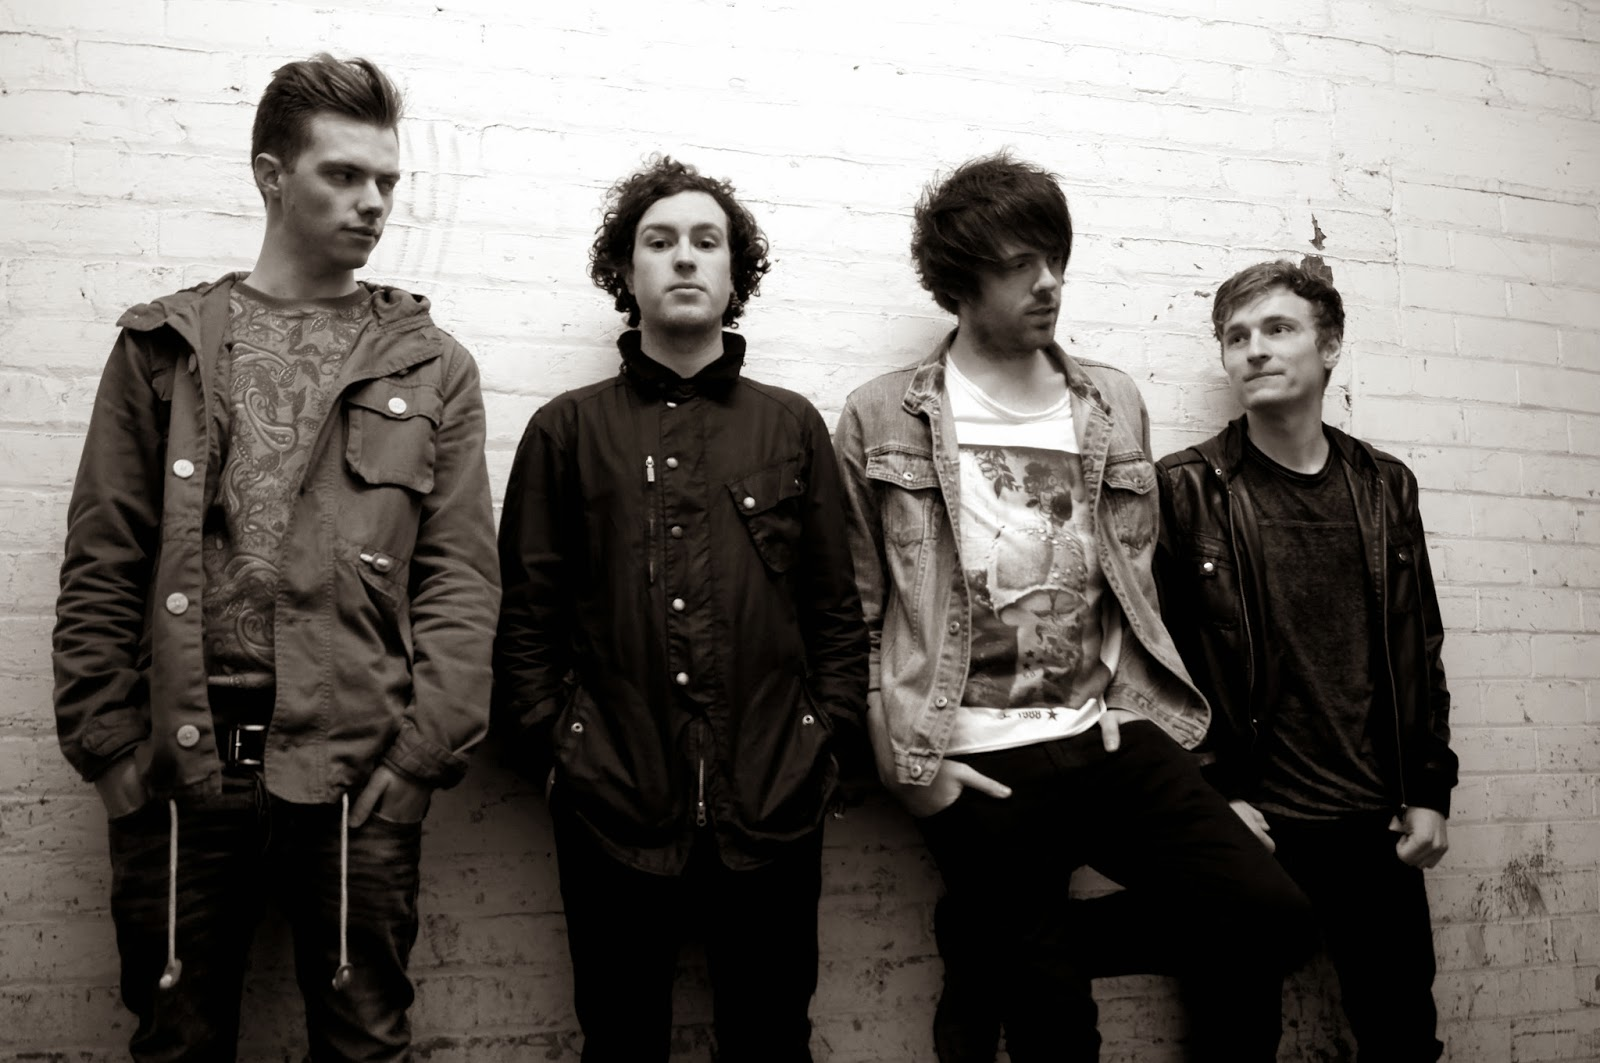 Manchester band The Marivaux